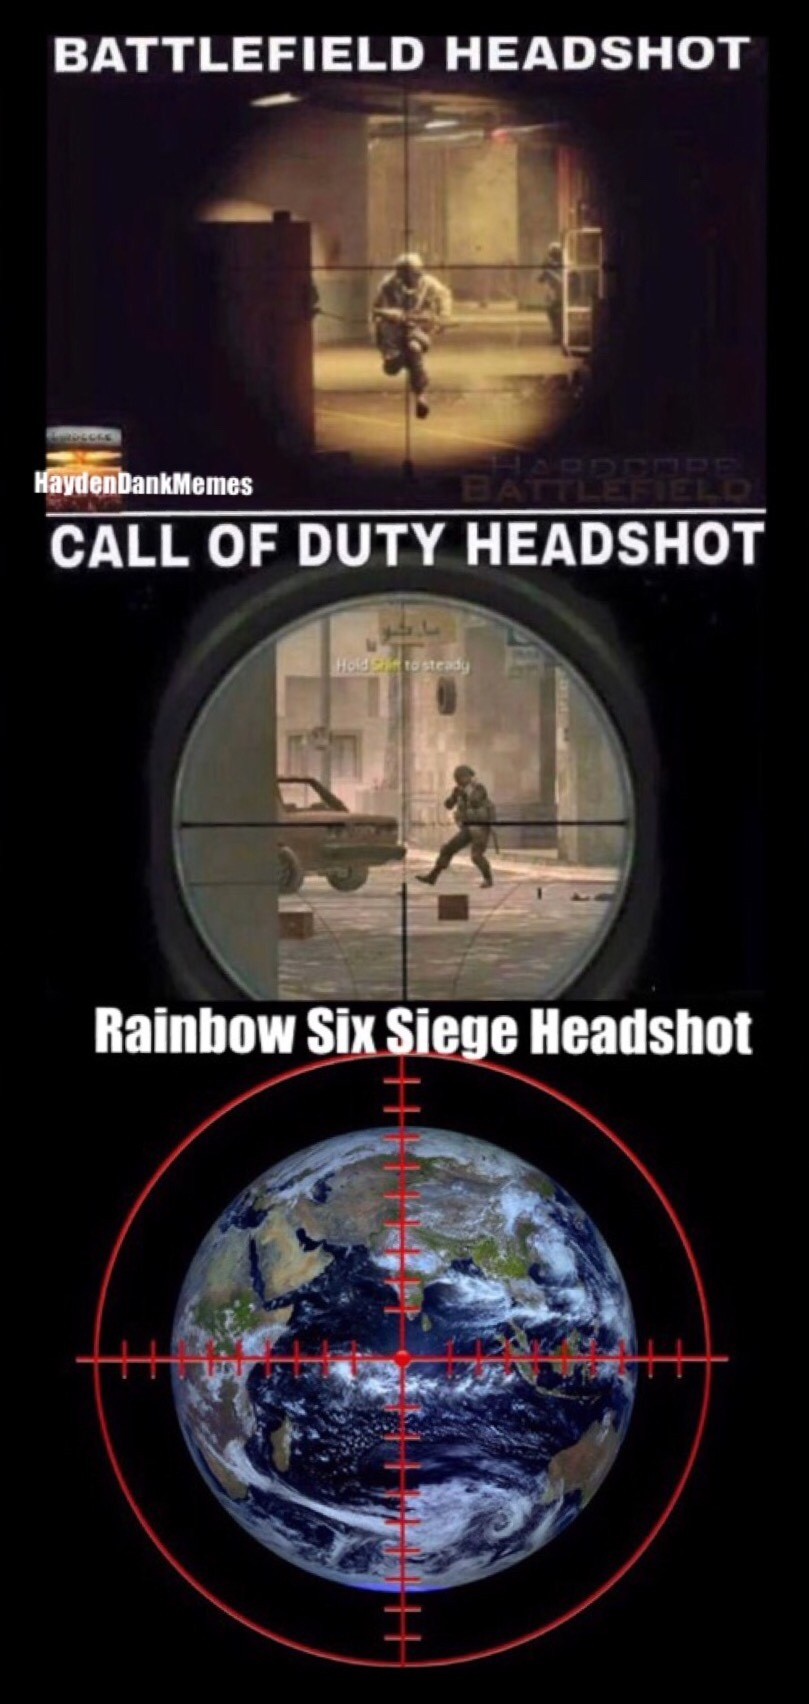 Why aim when you can get free headshots - meme